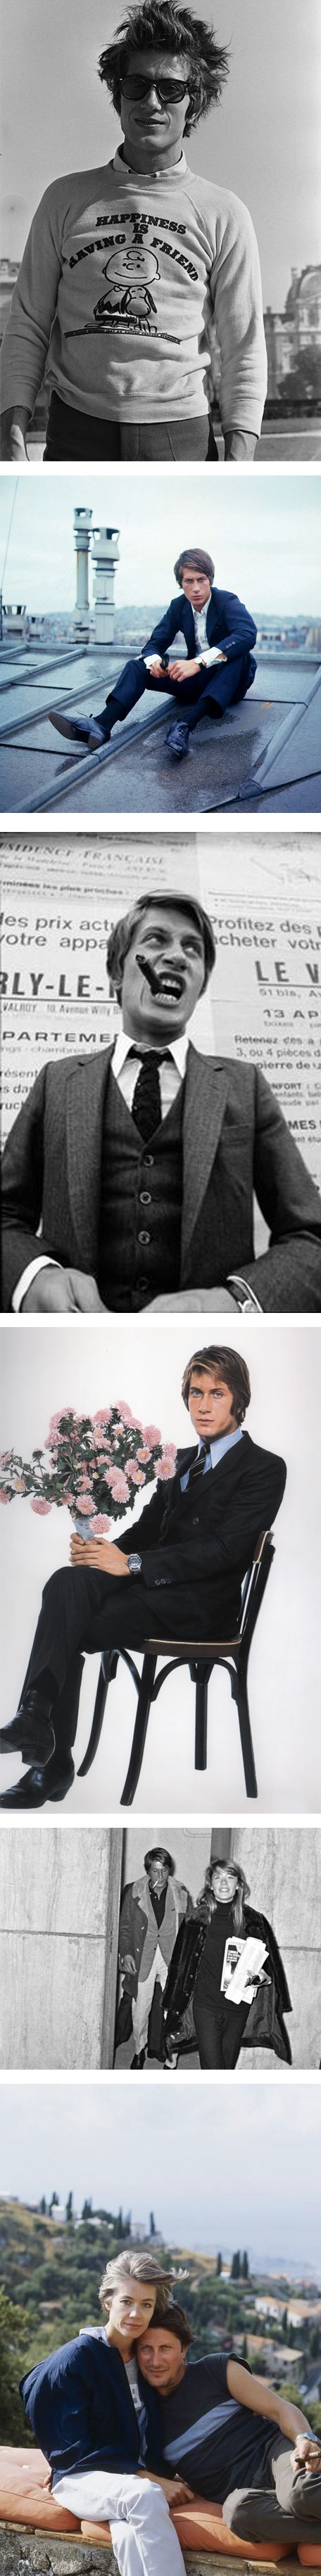 This week's style icon: Jacques Dutronc